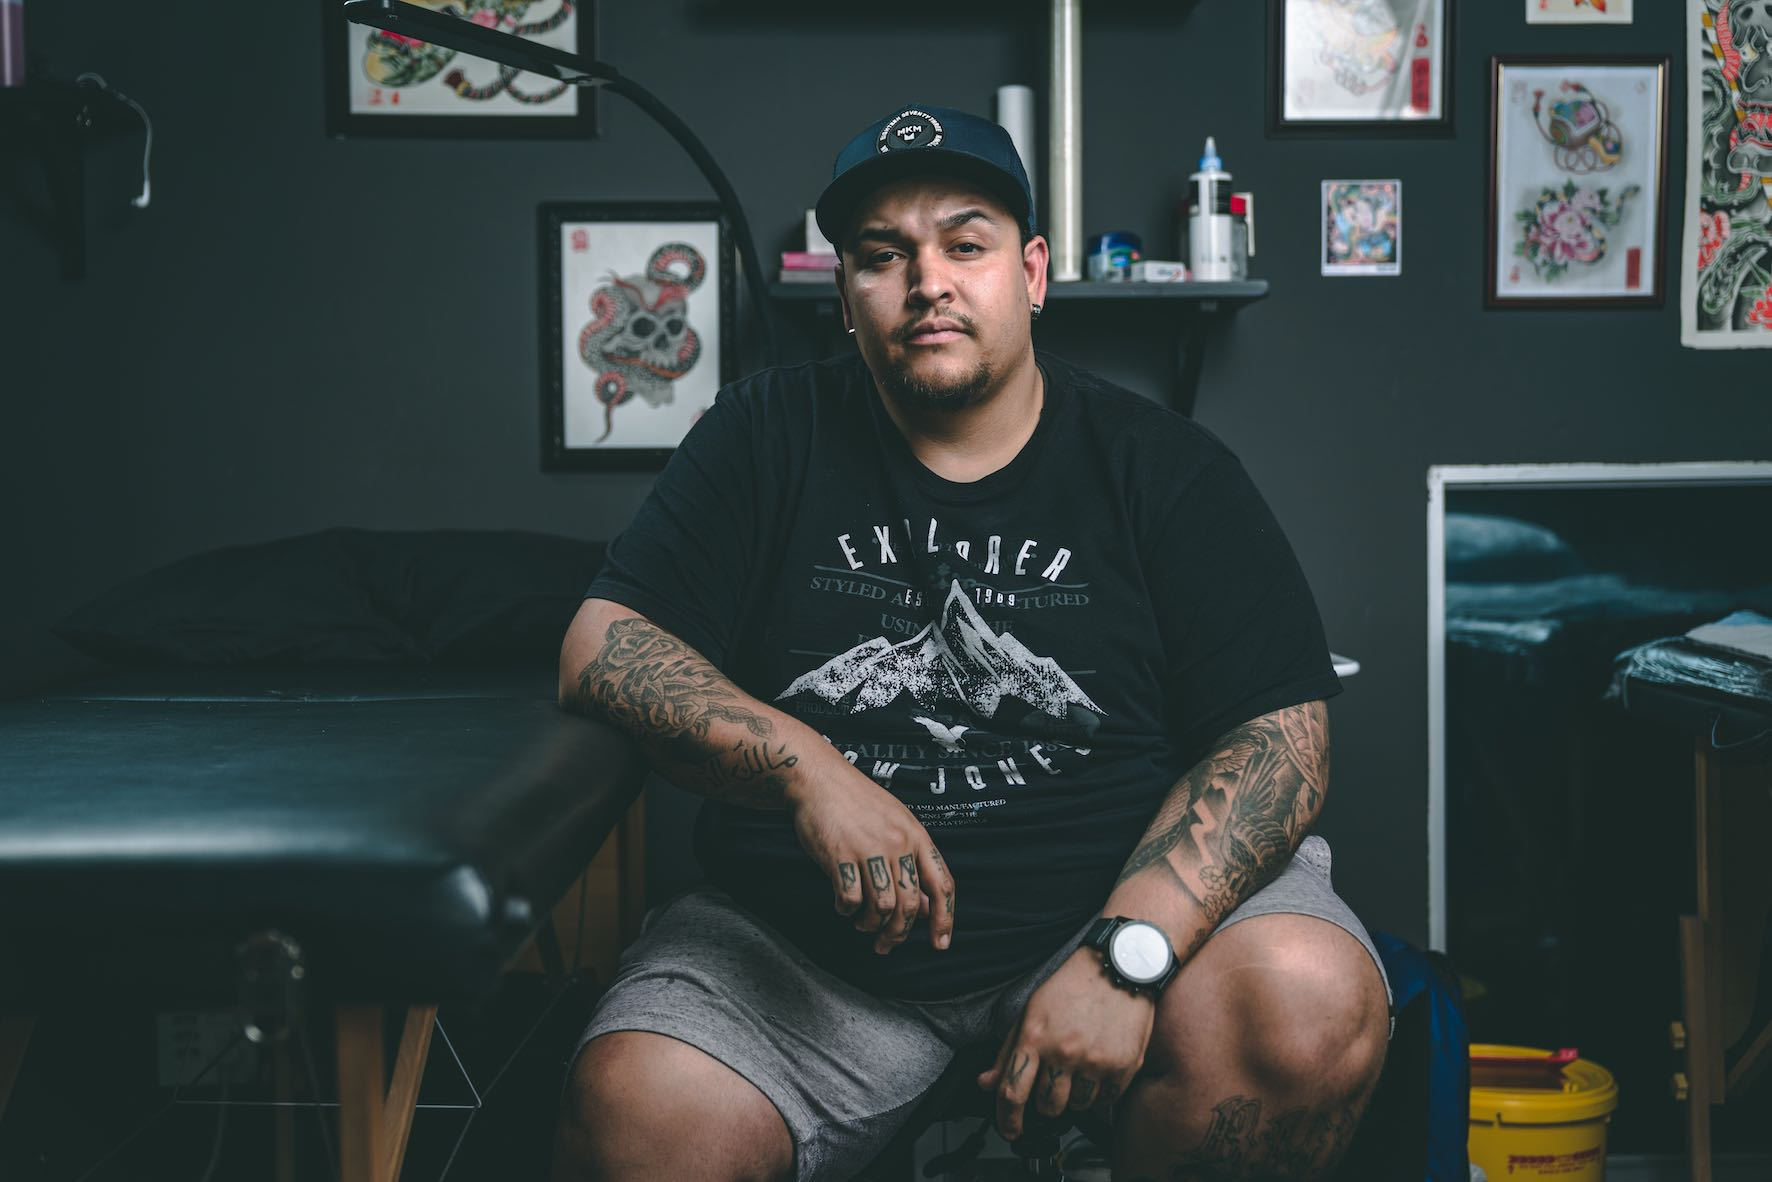 resenting Michael Palmer, aka Big Mike, as our featured Tattoo Artist